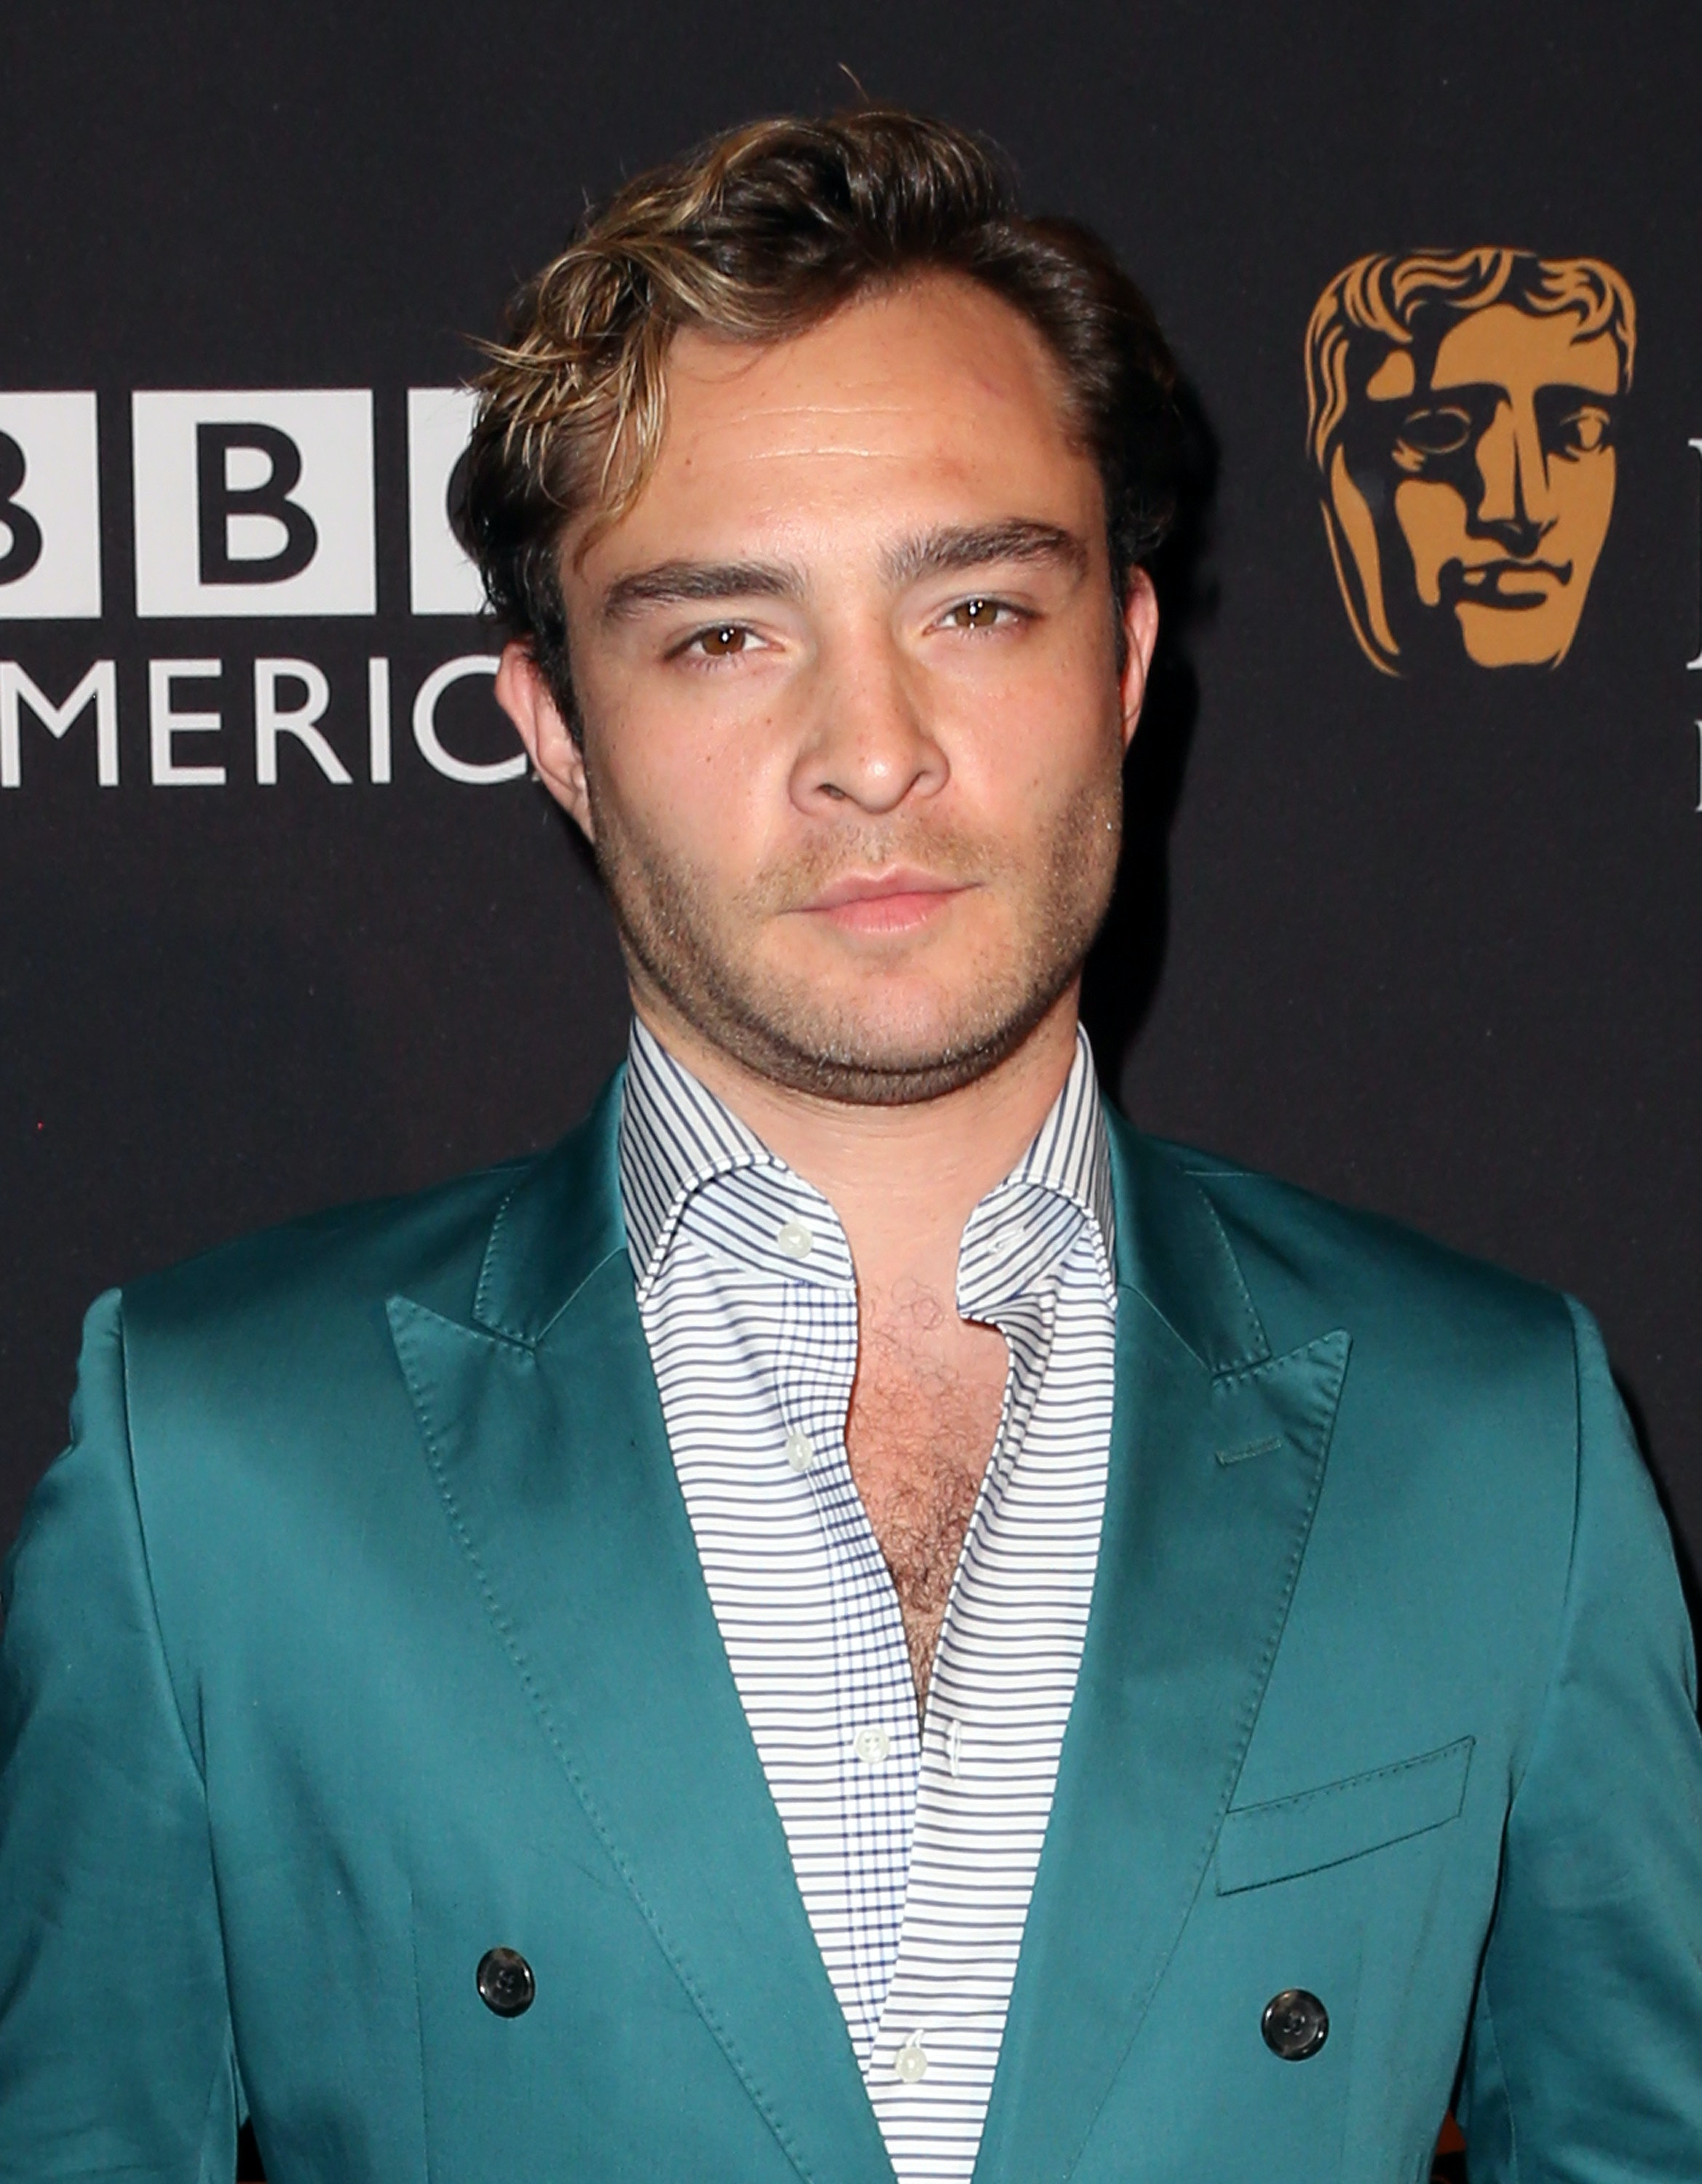 'Gossip Girl' Actor Ed Westwick Accused of Sexual Assault